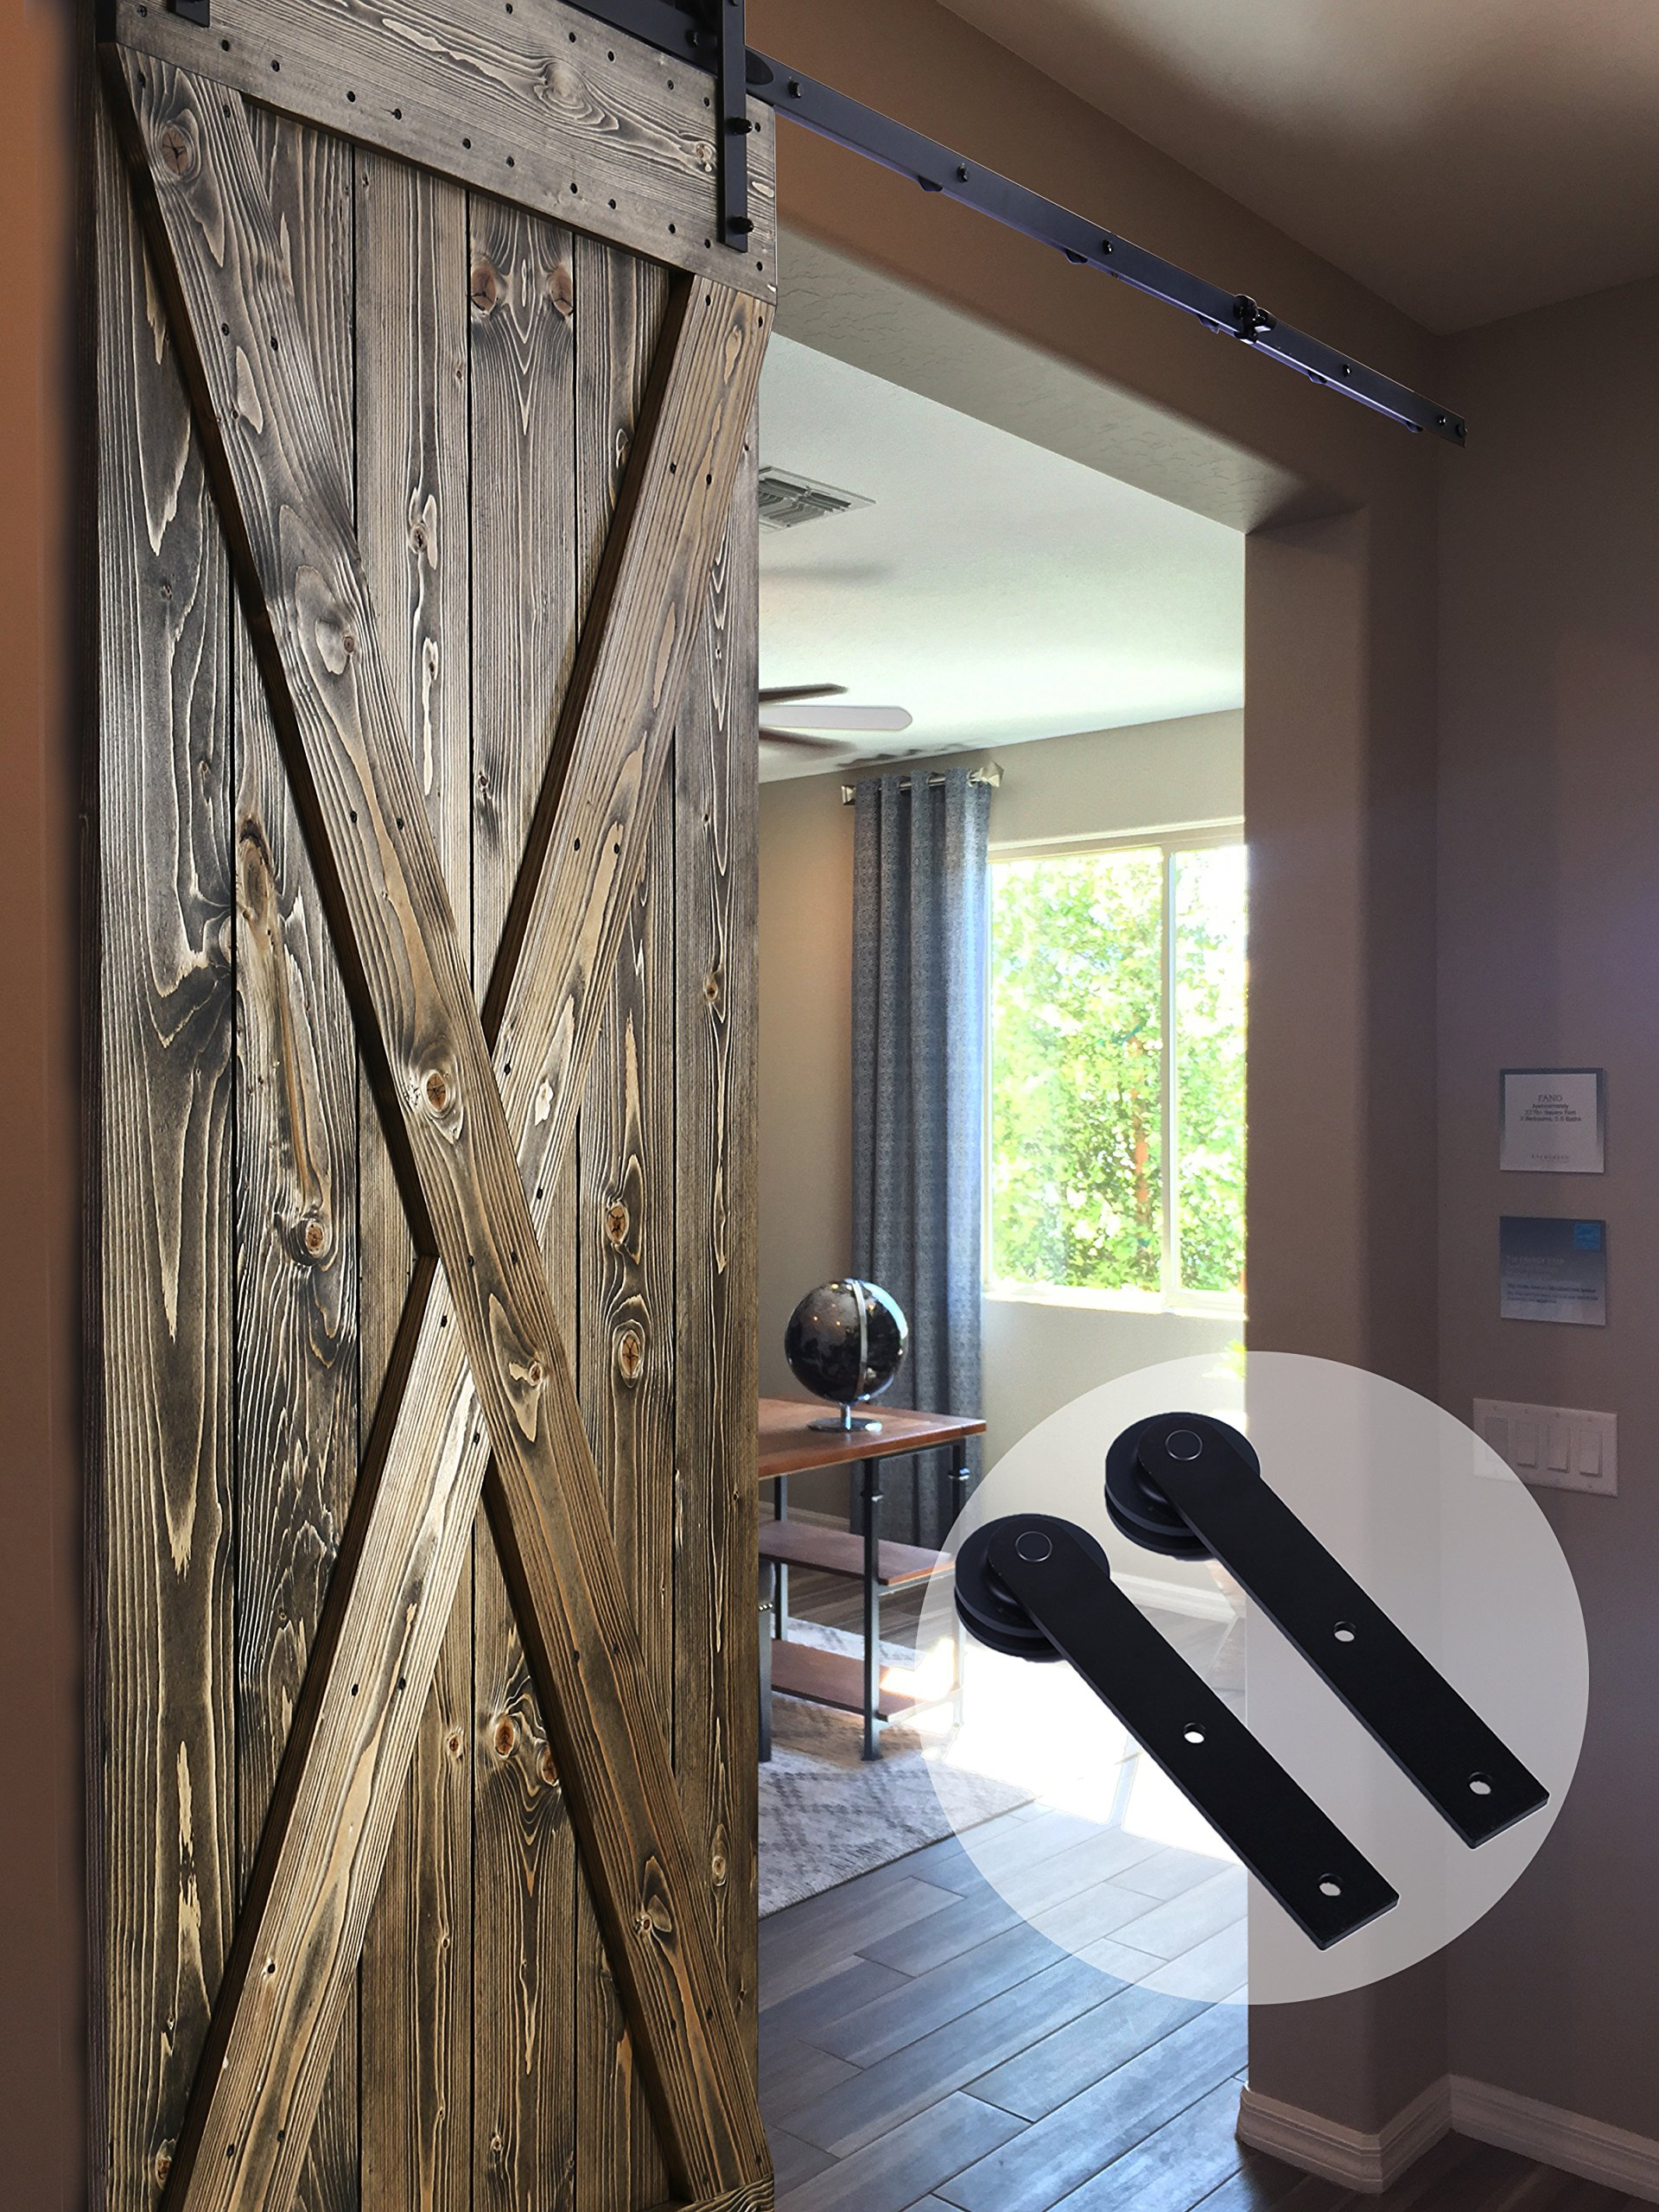 CCJH Country Classic Steel Interior Single Sliding Barn Door Hardware Kit 7 Ft Black by CCJH (Image #2)